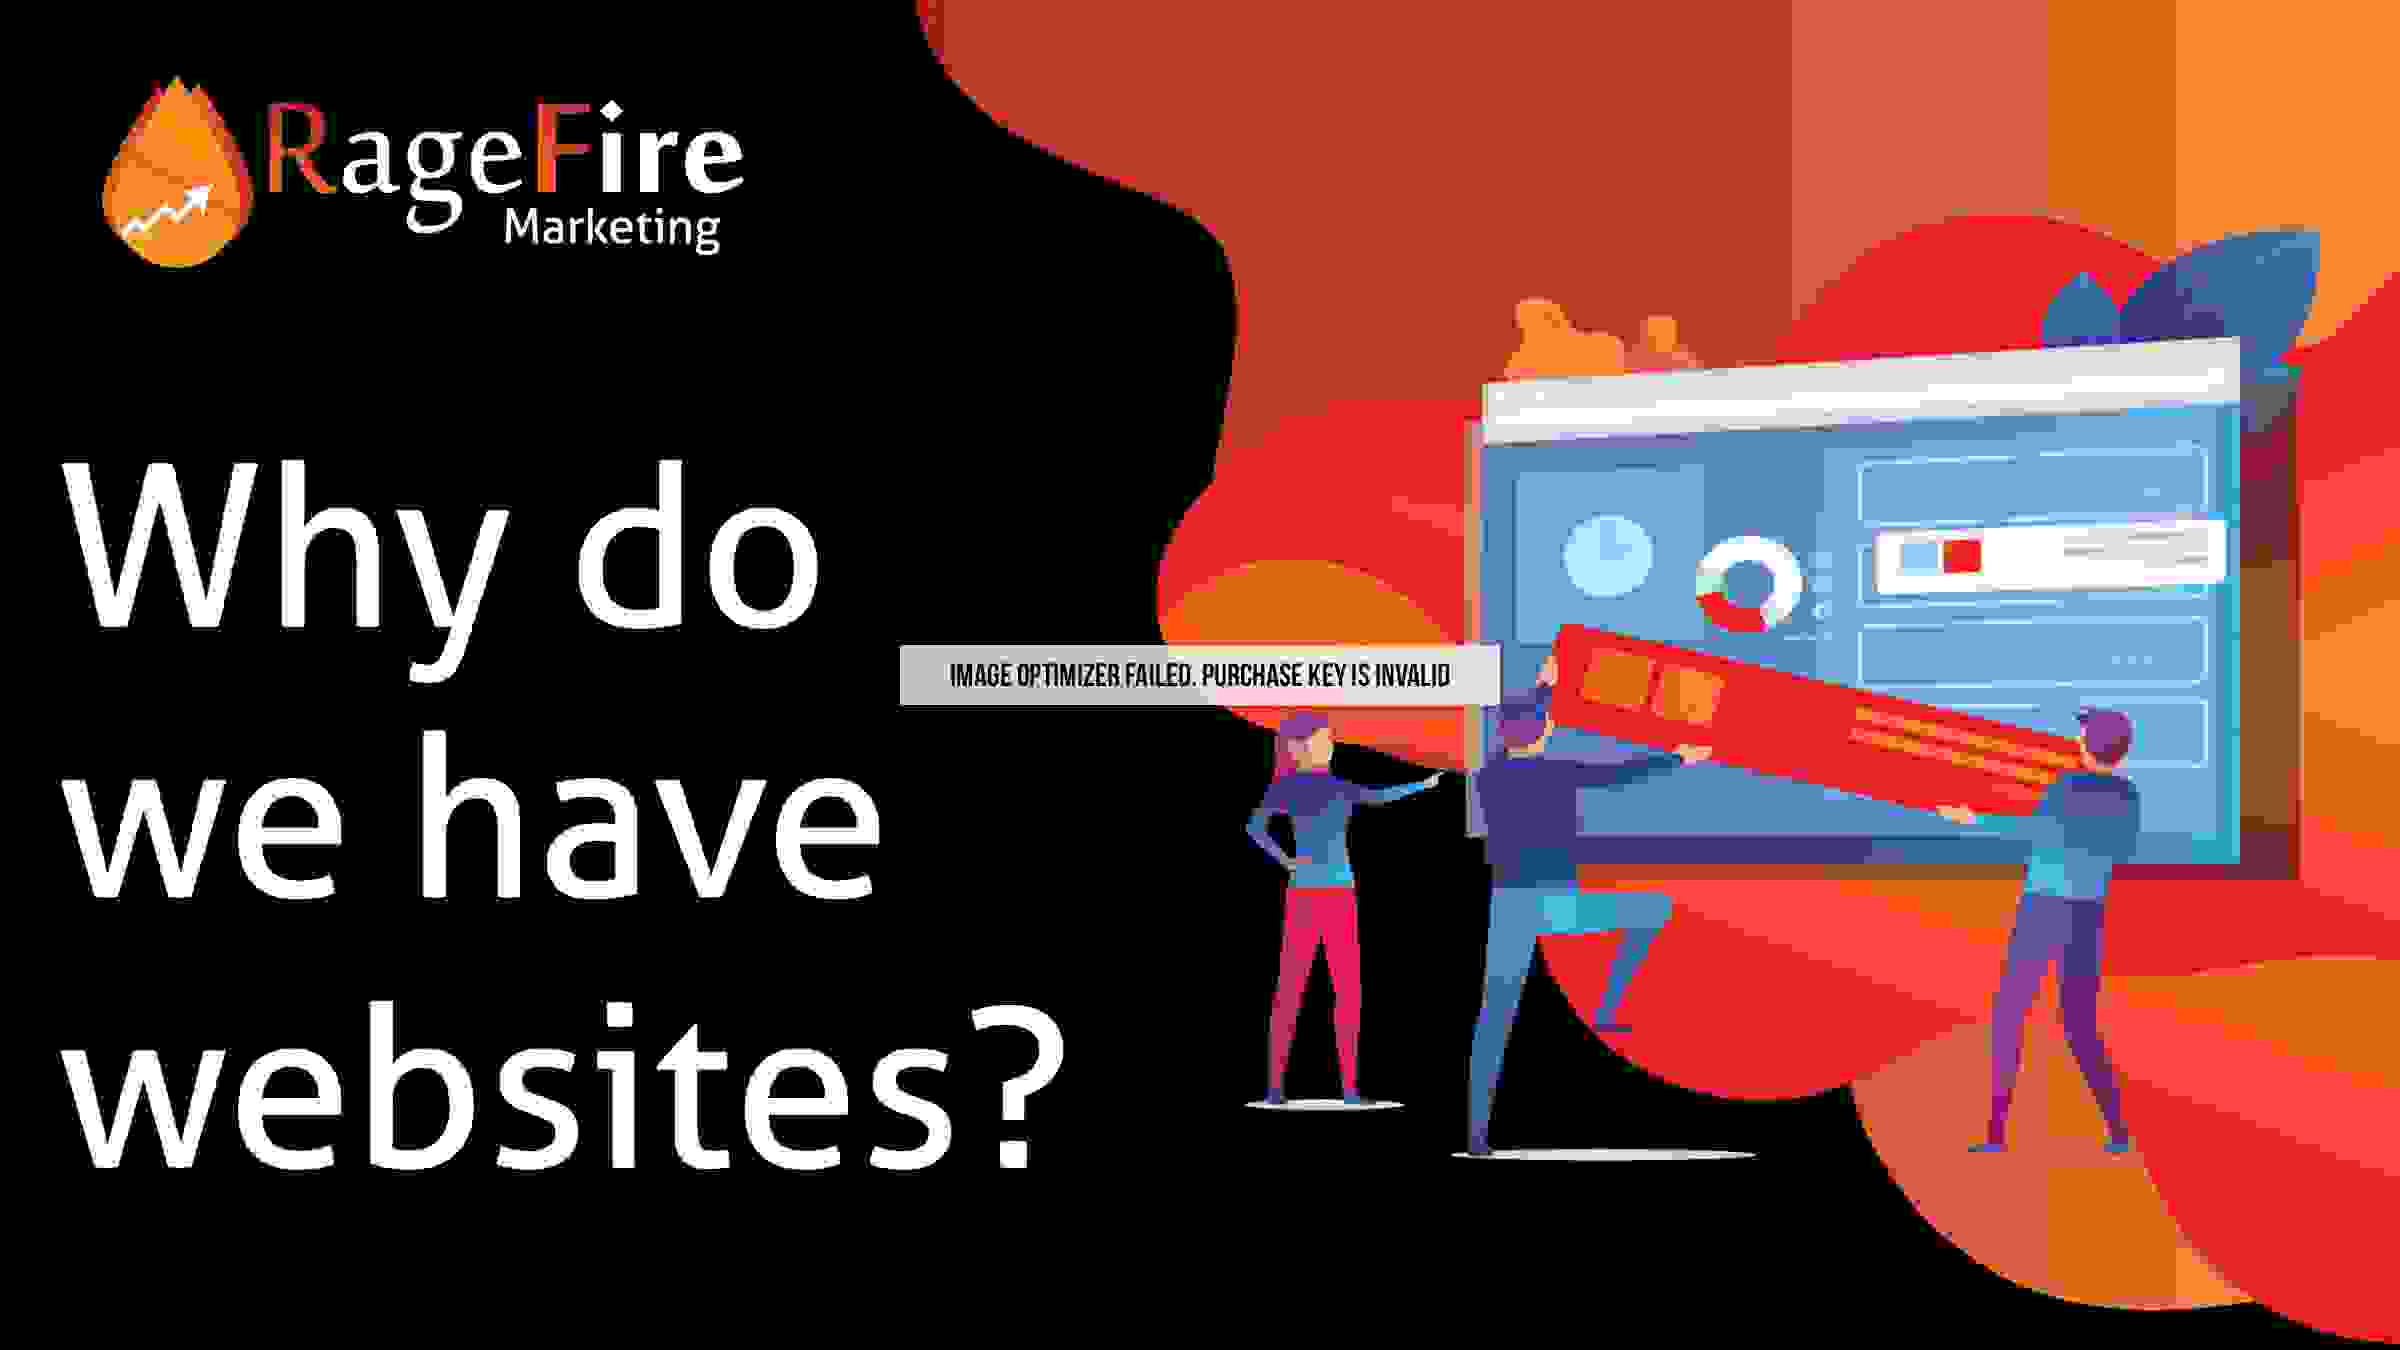 Why we do have websites?